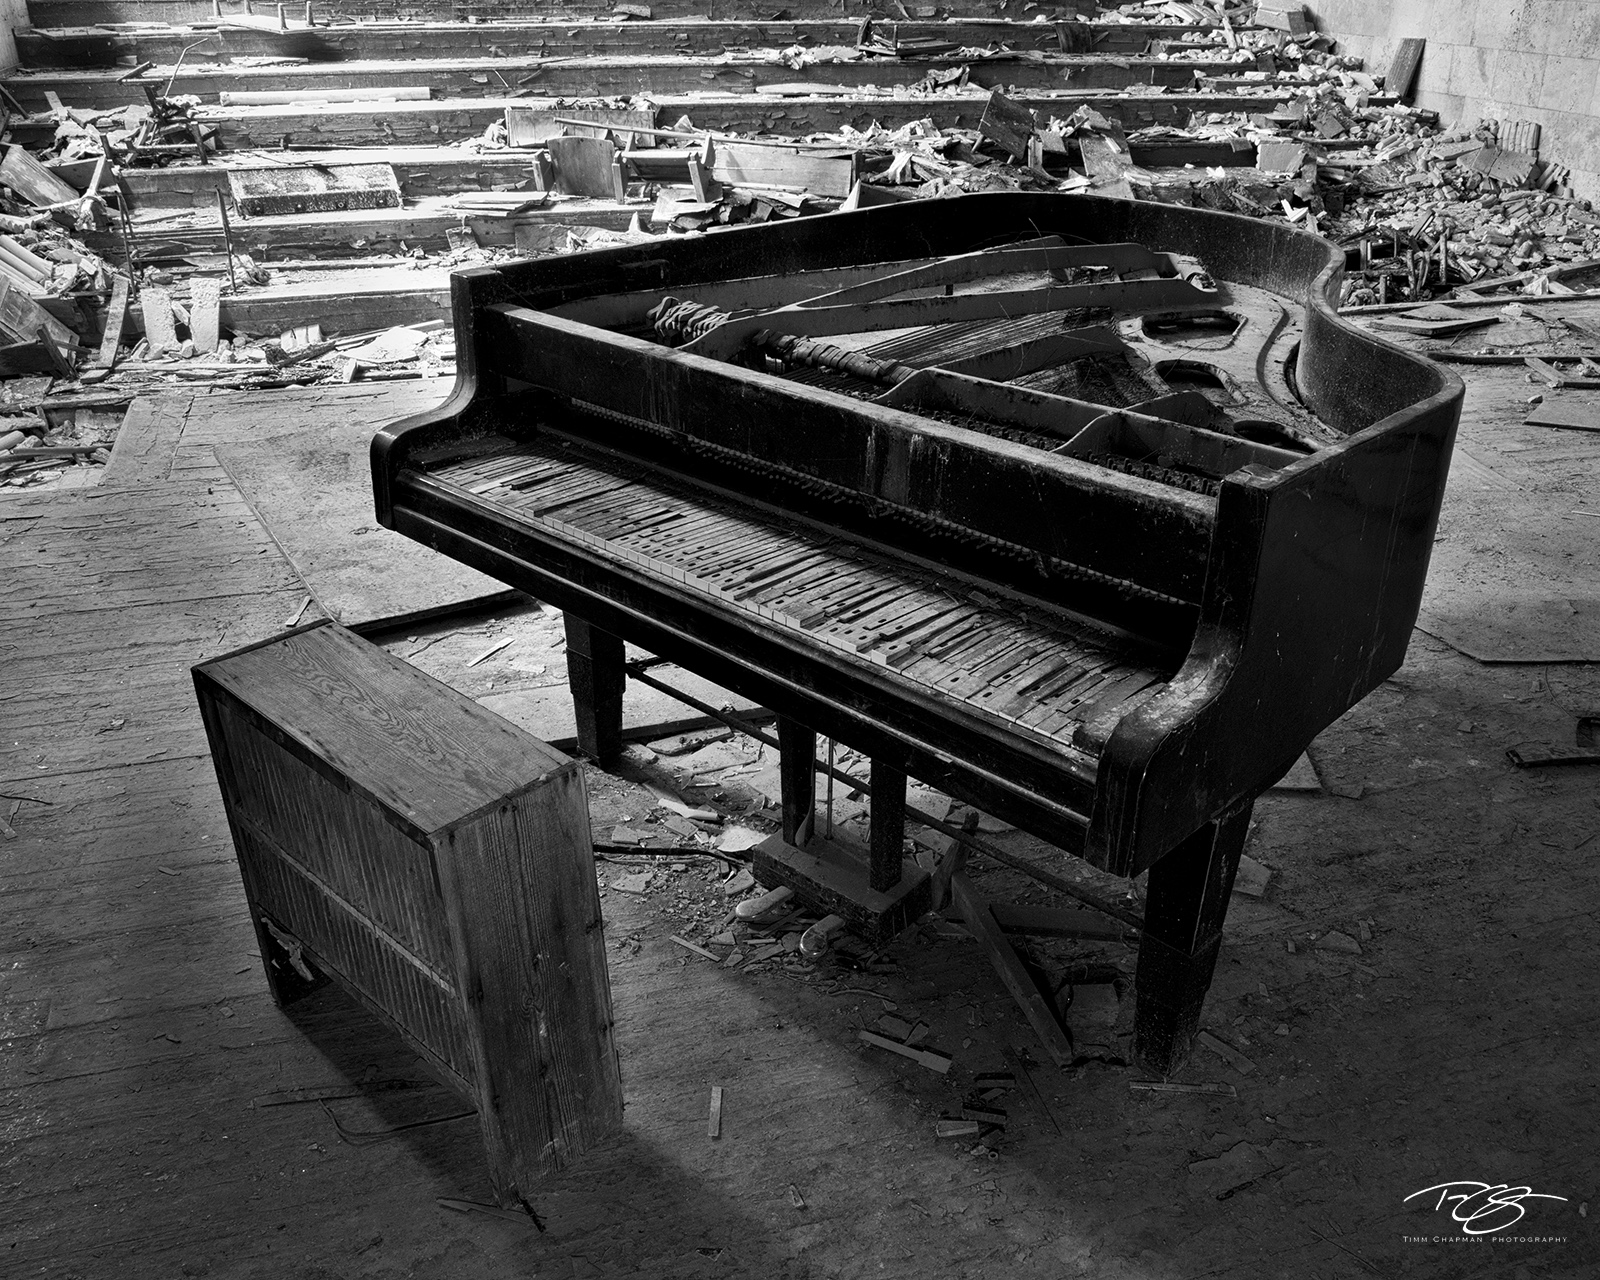 chernobyl, chornobyl, pripyat, exclusion zone, abandoned, forgotten, wasteland, radioactive, decay, piano, worn, recital, stage, grand piano, when the music stops, reclamation, music, warped, the day , photo